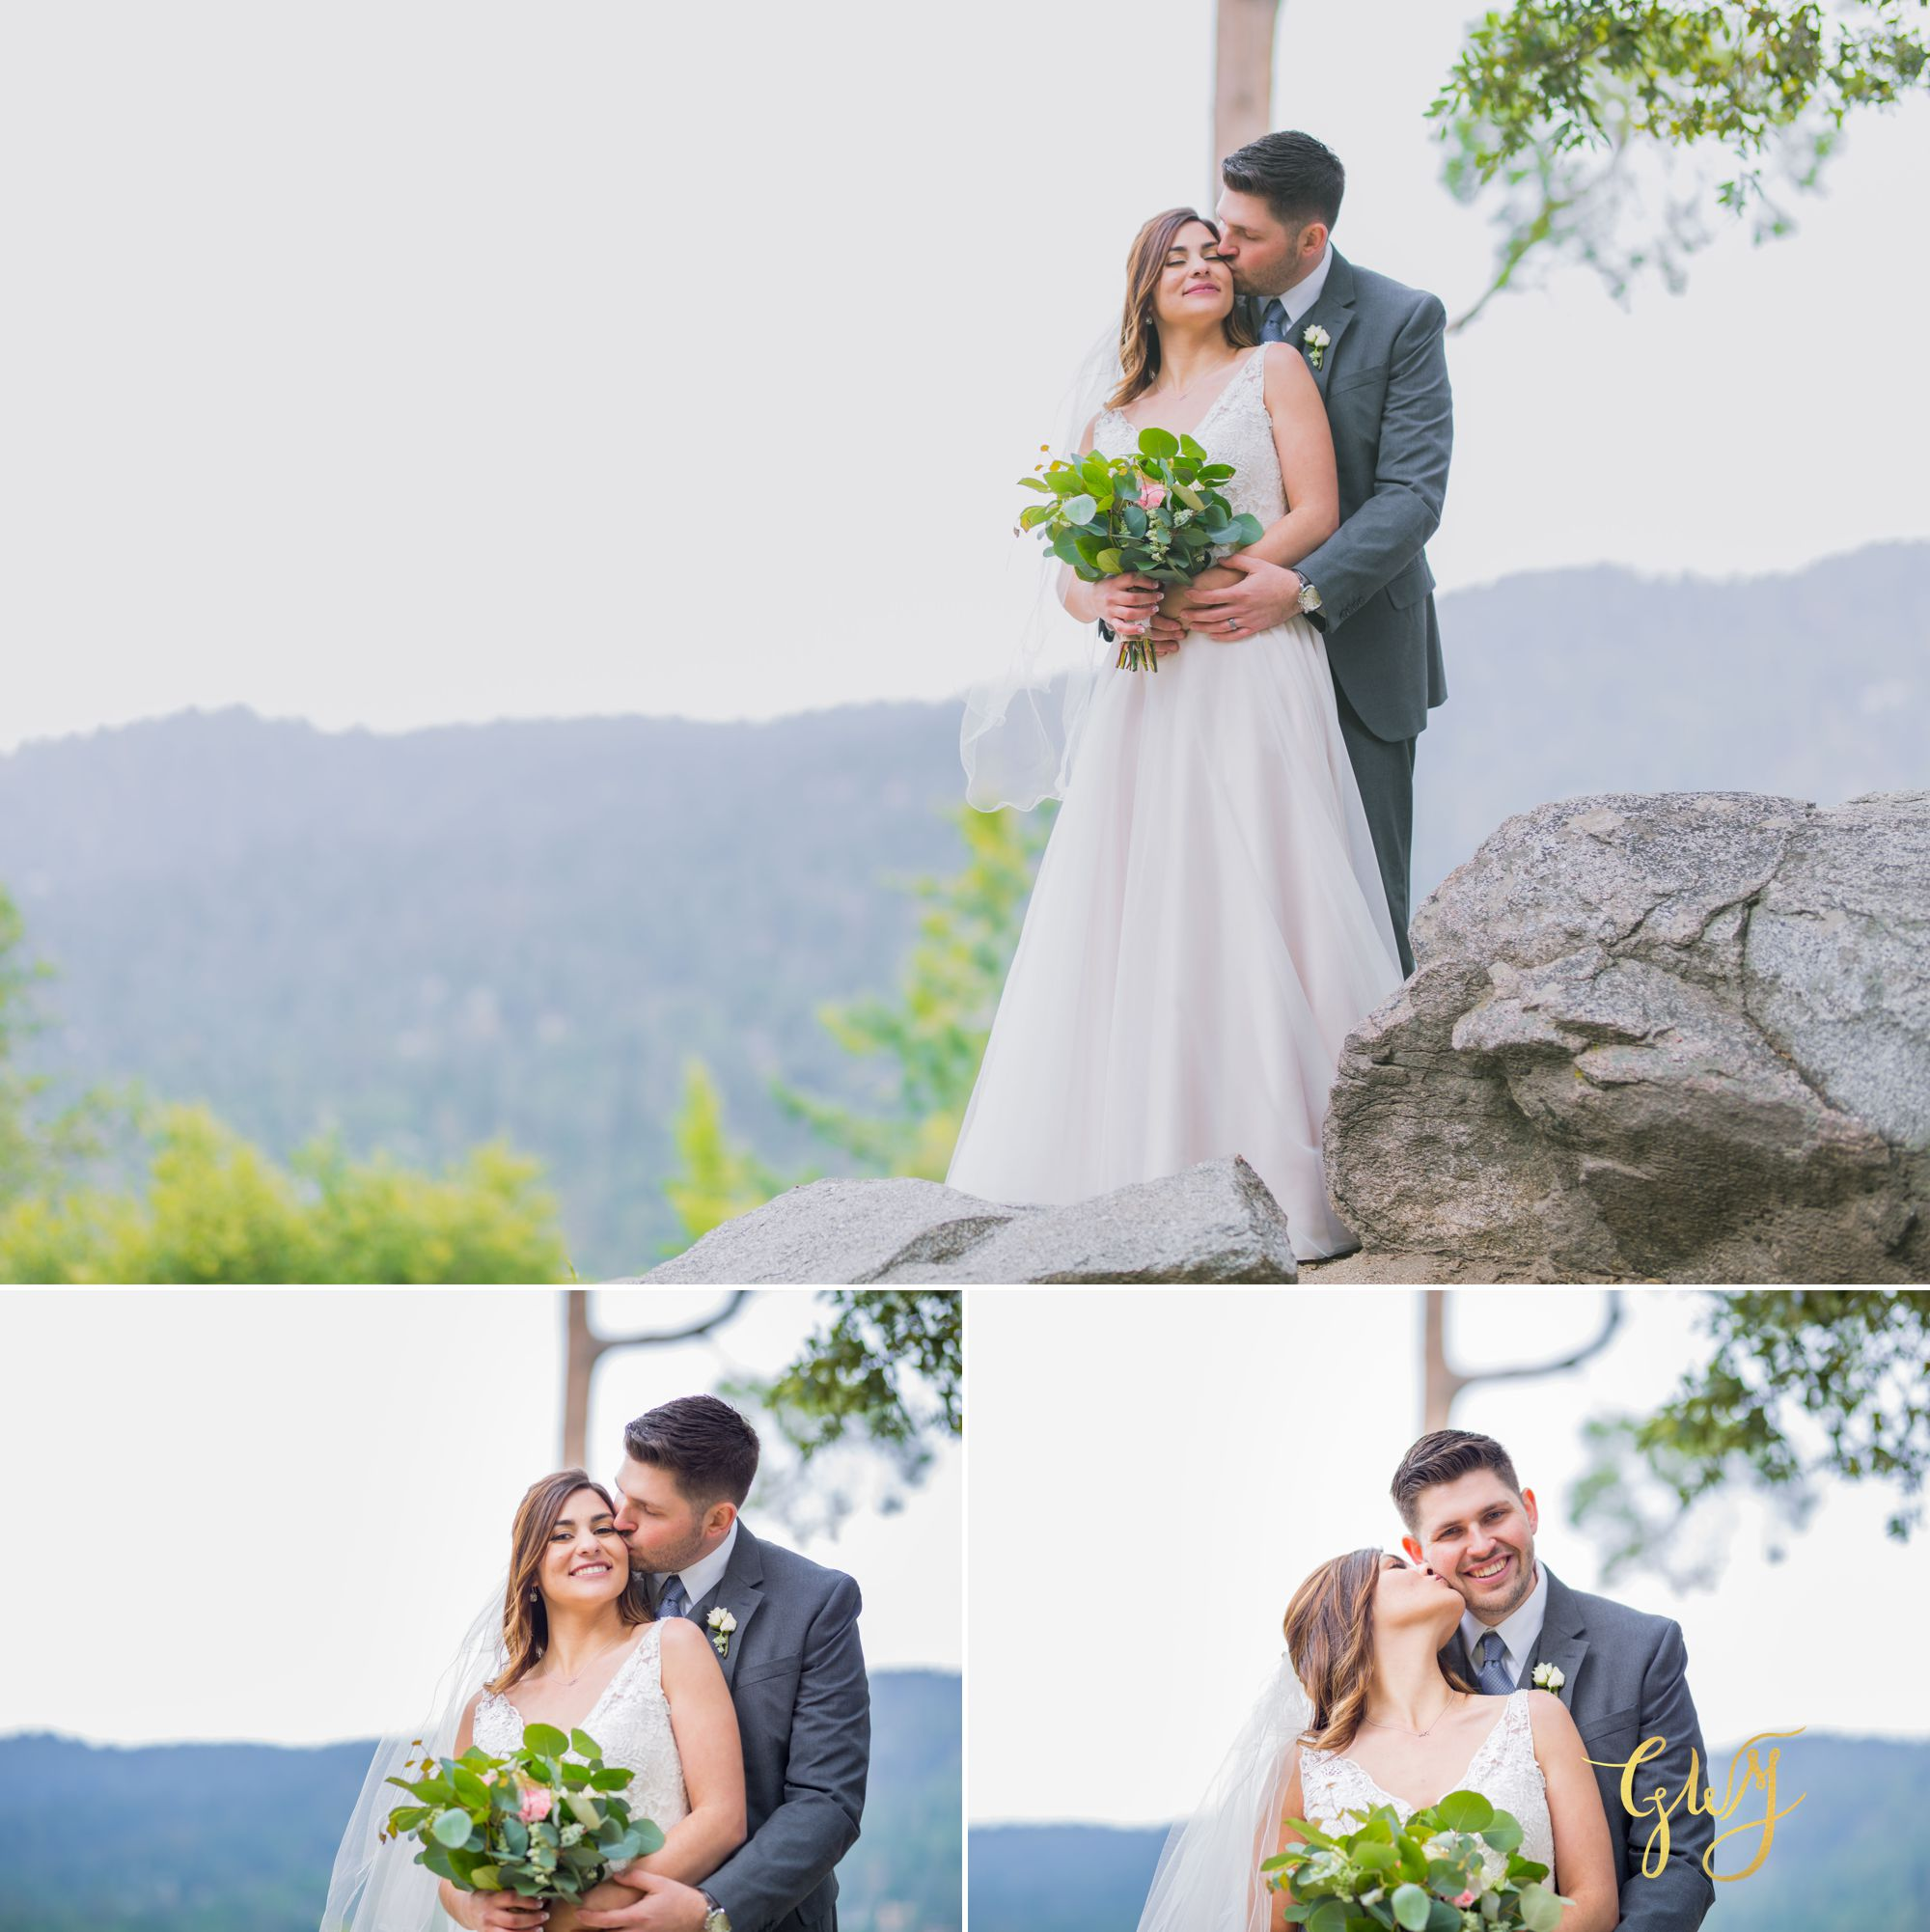 Allison + Jared Southern California Mountain Thousand Pines Christian Camp Wedding by Glass Woods Media 29.jpg